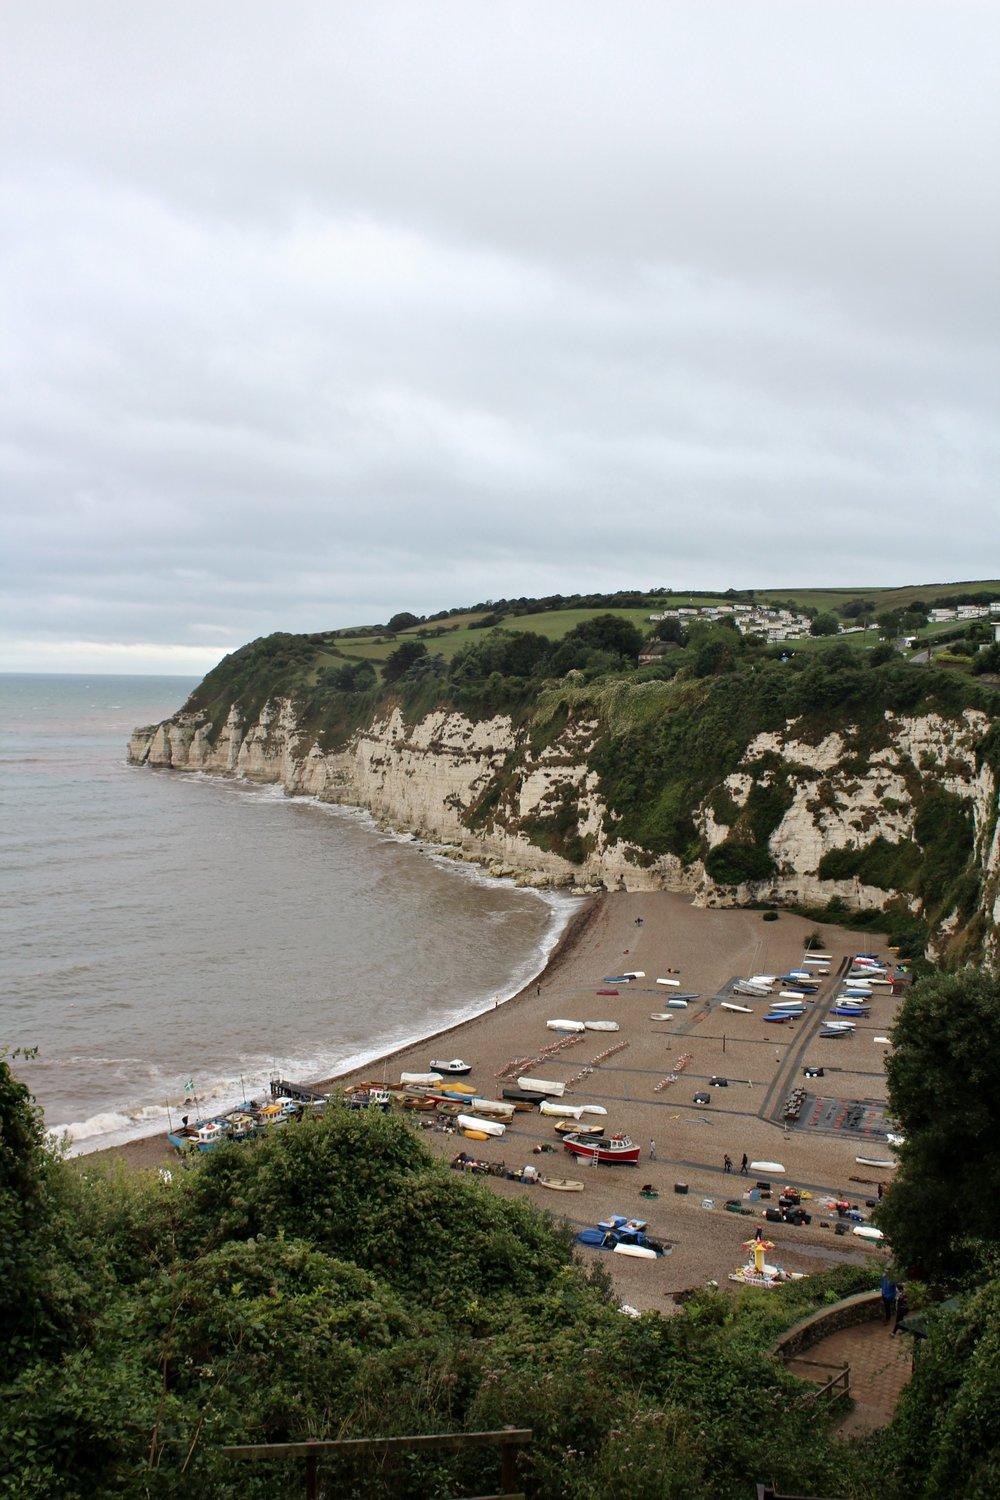 view of Beer beach from the walk to Seaton